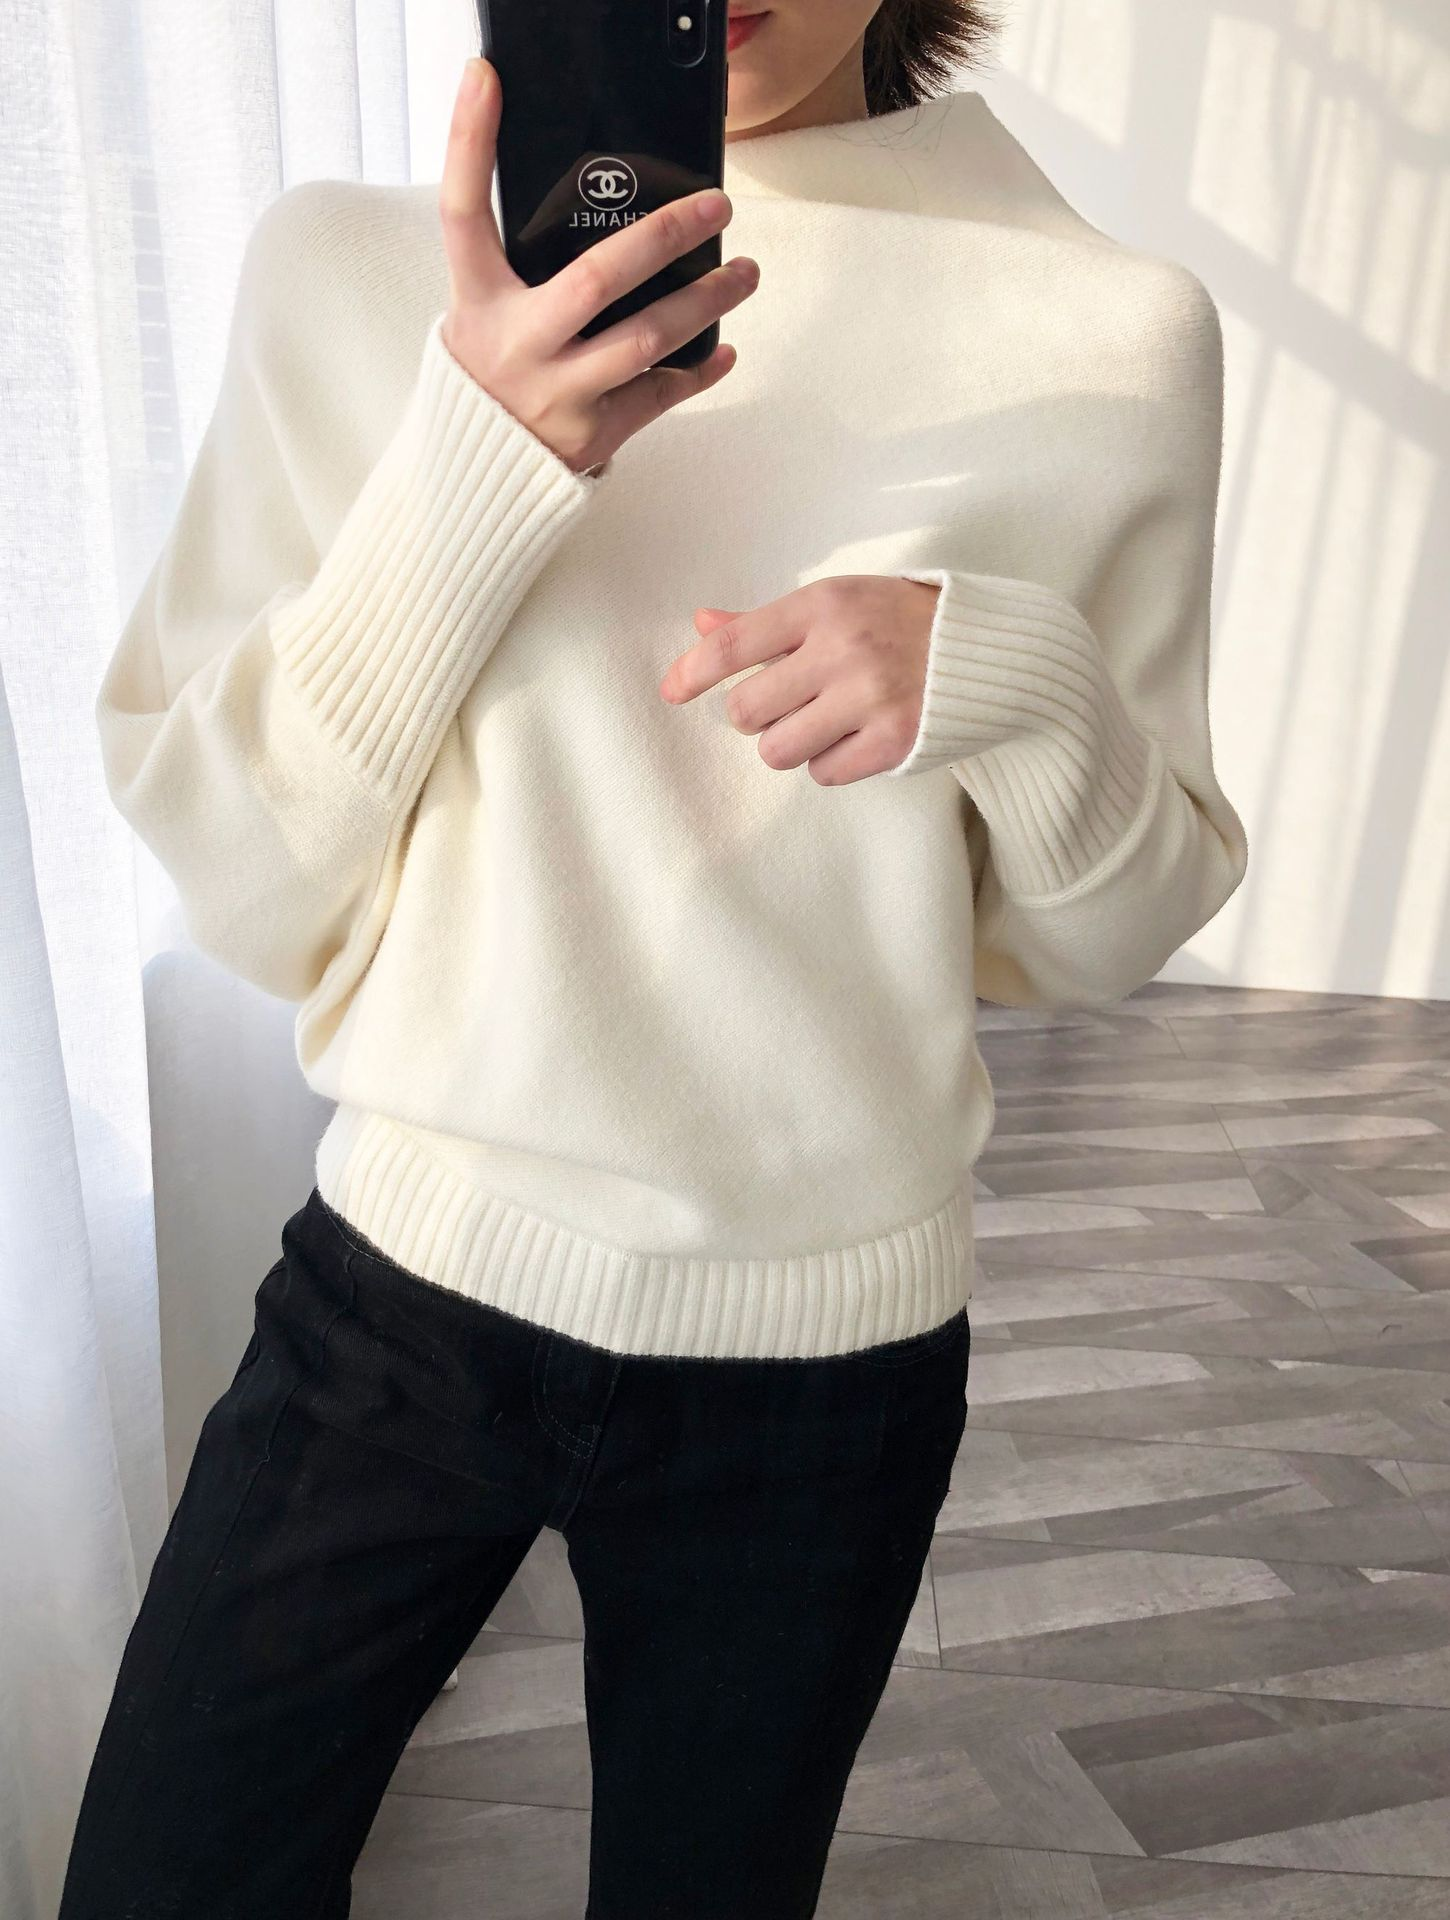 Autumn Winter Vintage Irregular Sweater Women Batwing Thicken Pullover Loose Sweater Large Size Knitted Female Jumpers SA148S40(China)